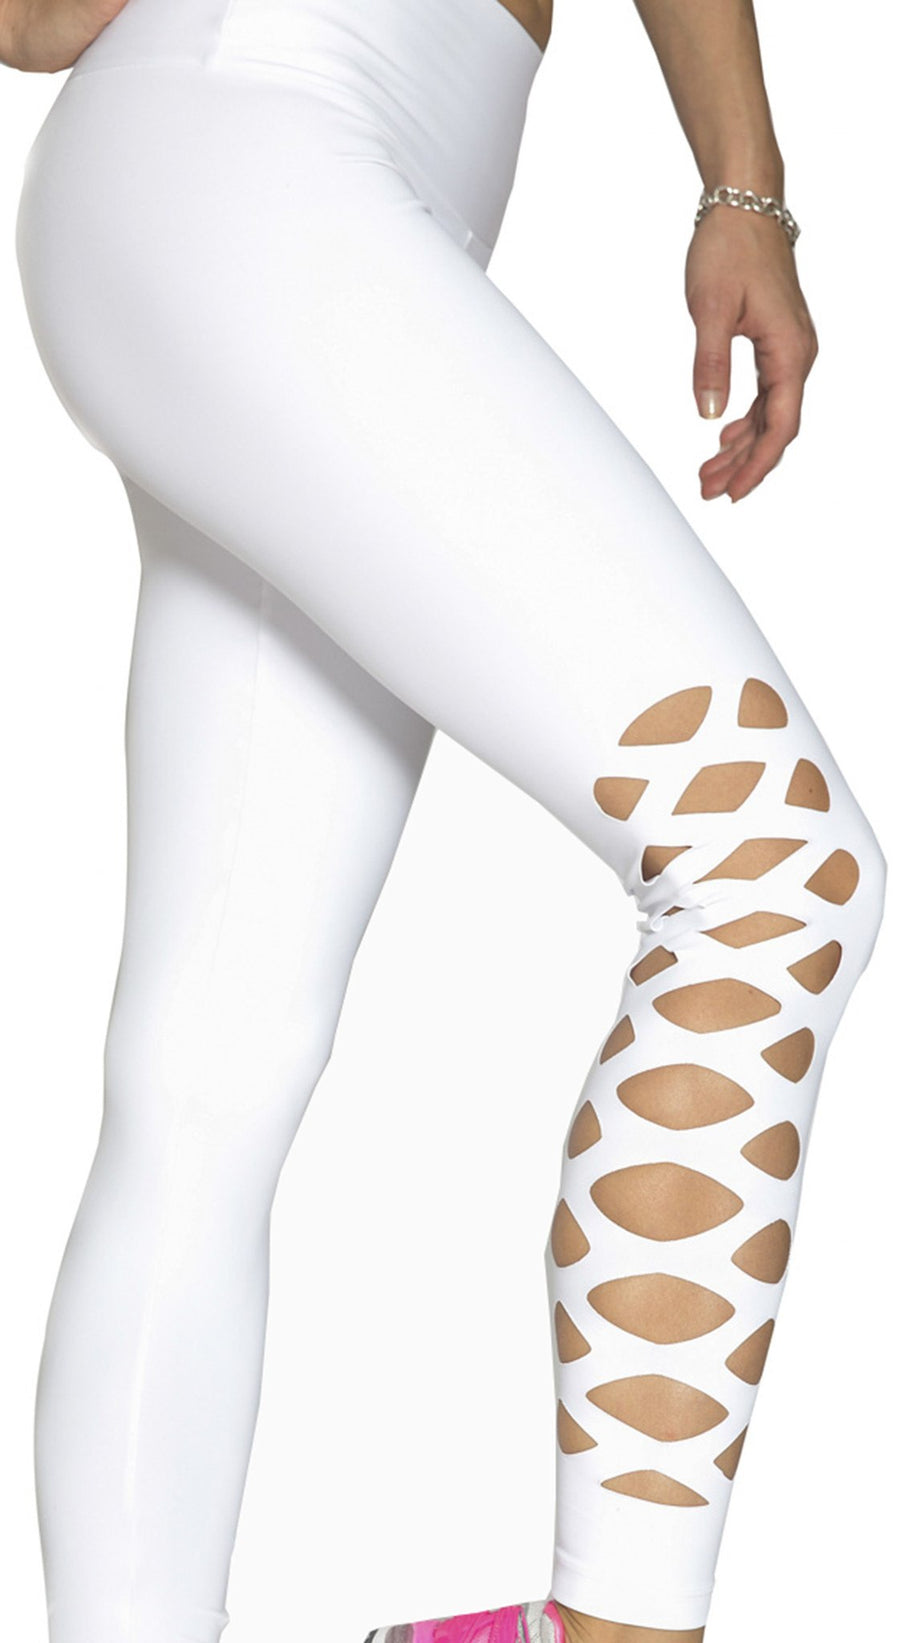 Yoga Pants - NZ Mind White Laser Cut